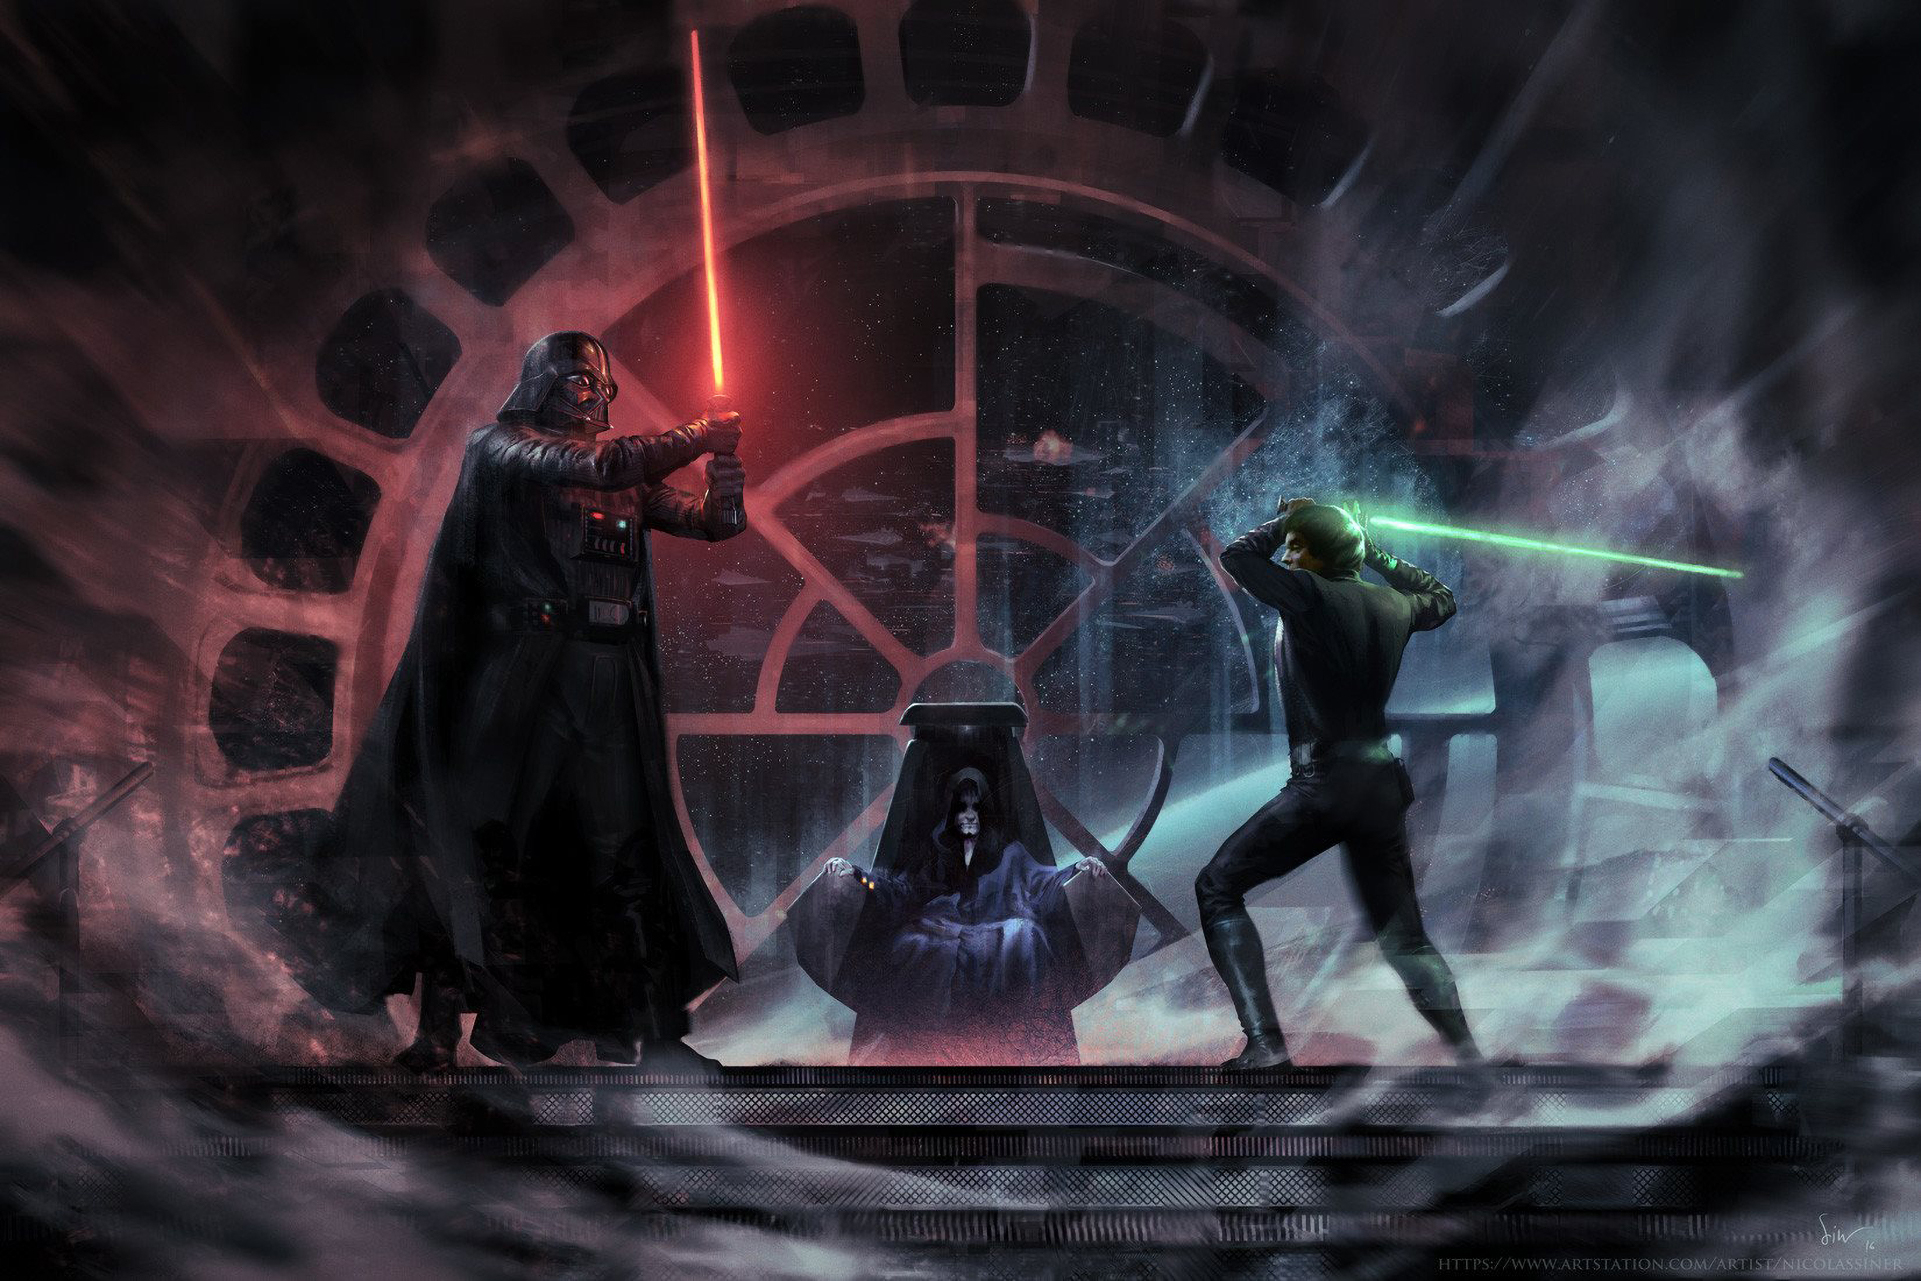 Luke Skywalker Vs Darth Vader Emperor Palpatin Wallpaper Hd Movies 4k Wallpapers Images Photos And Background